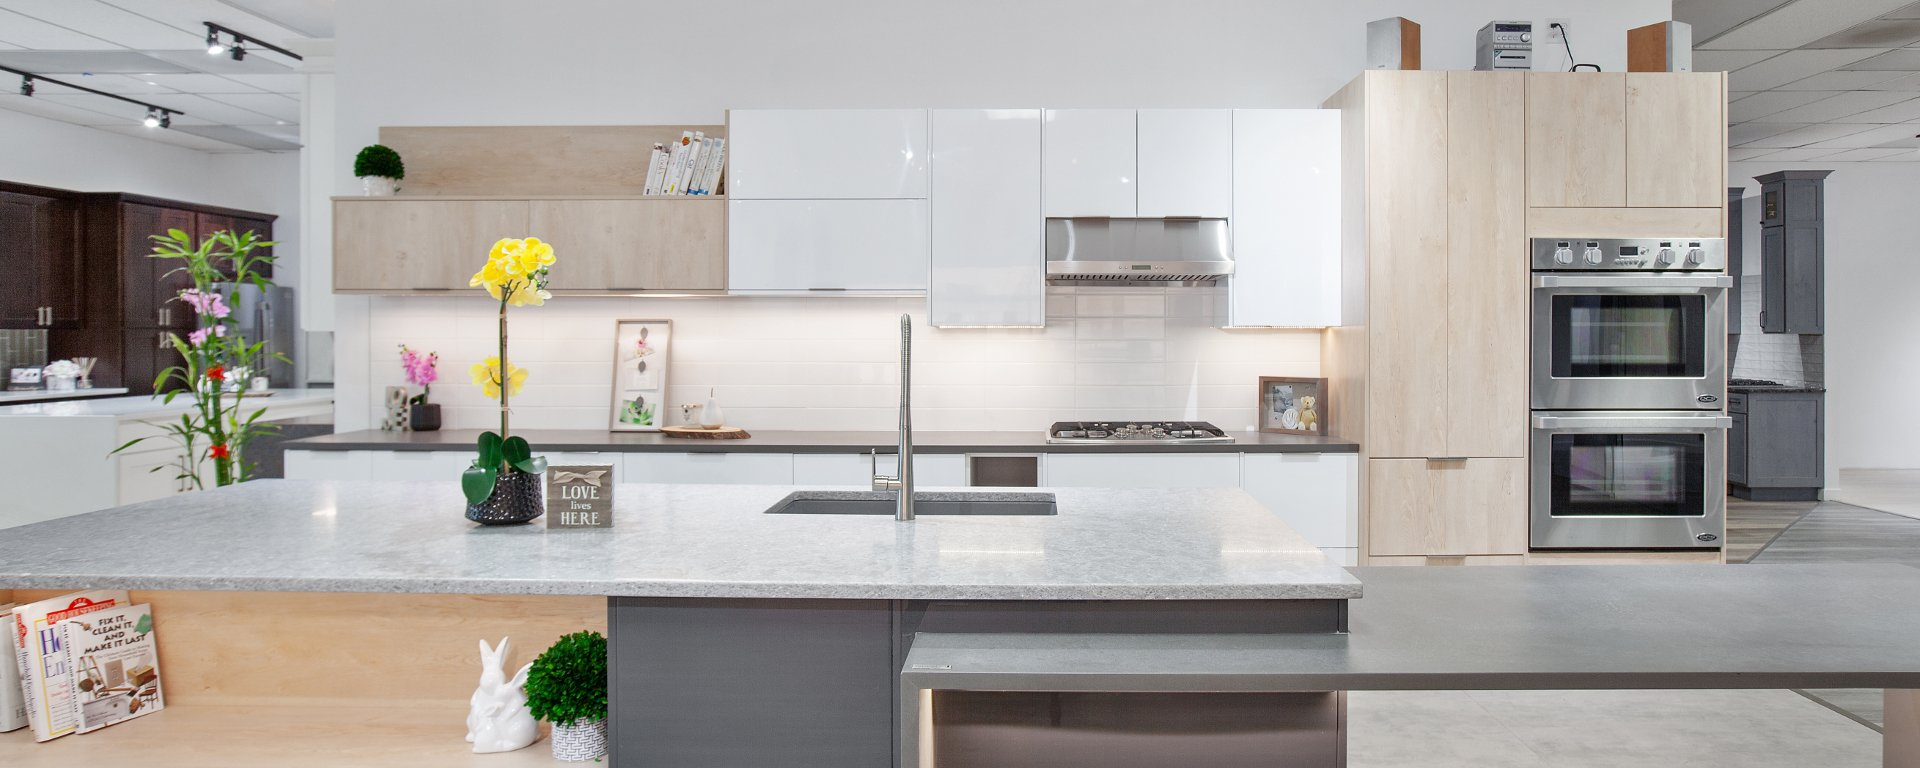 Best Cabinets And Countertops In Portland Kitchen Remodel Super Store Wong S Building Supply